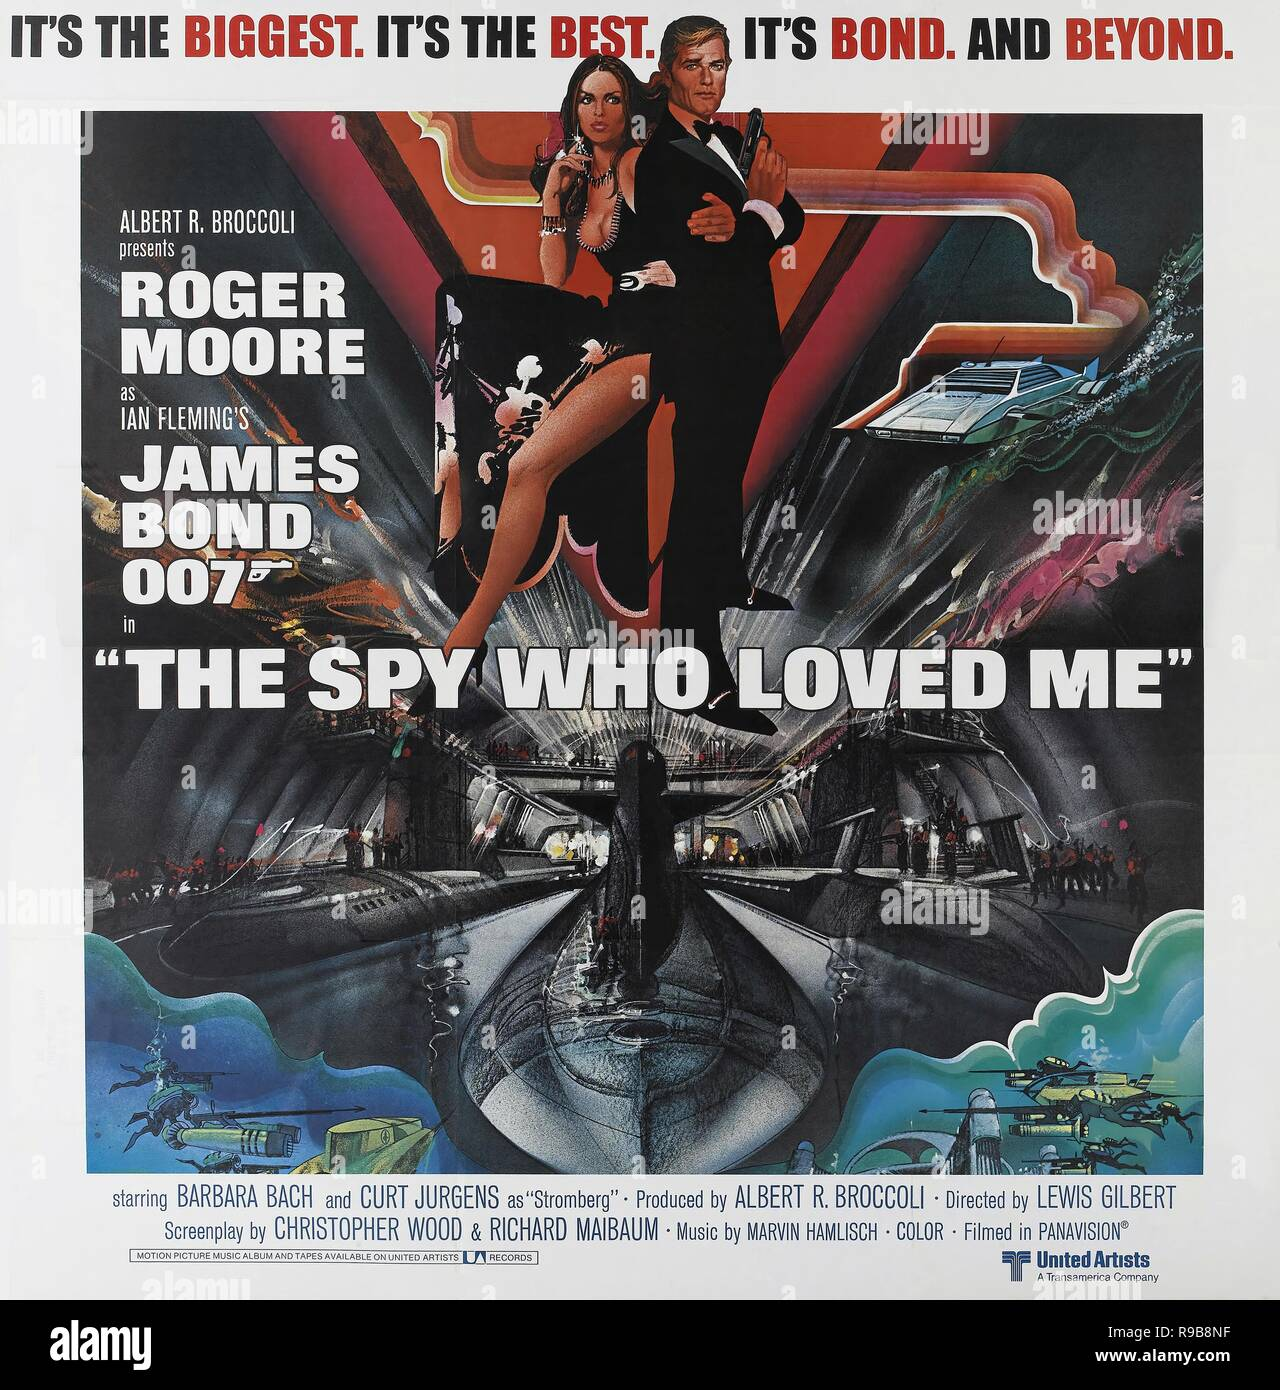 Original film title: THE SPY WHO LOVED ME. English title: 007, JAMES BOND: SPY WHO LOVED ME, THE. Year: 1977. Director: LEWIS GILBERT. Credit: EON PRODUCTIONS / Album - Stock Image